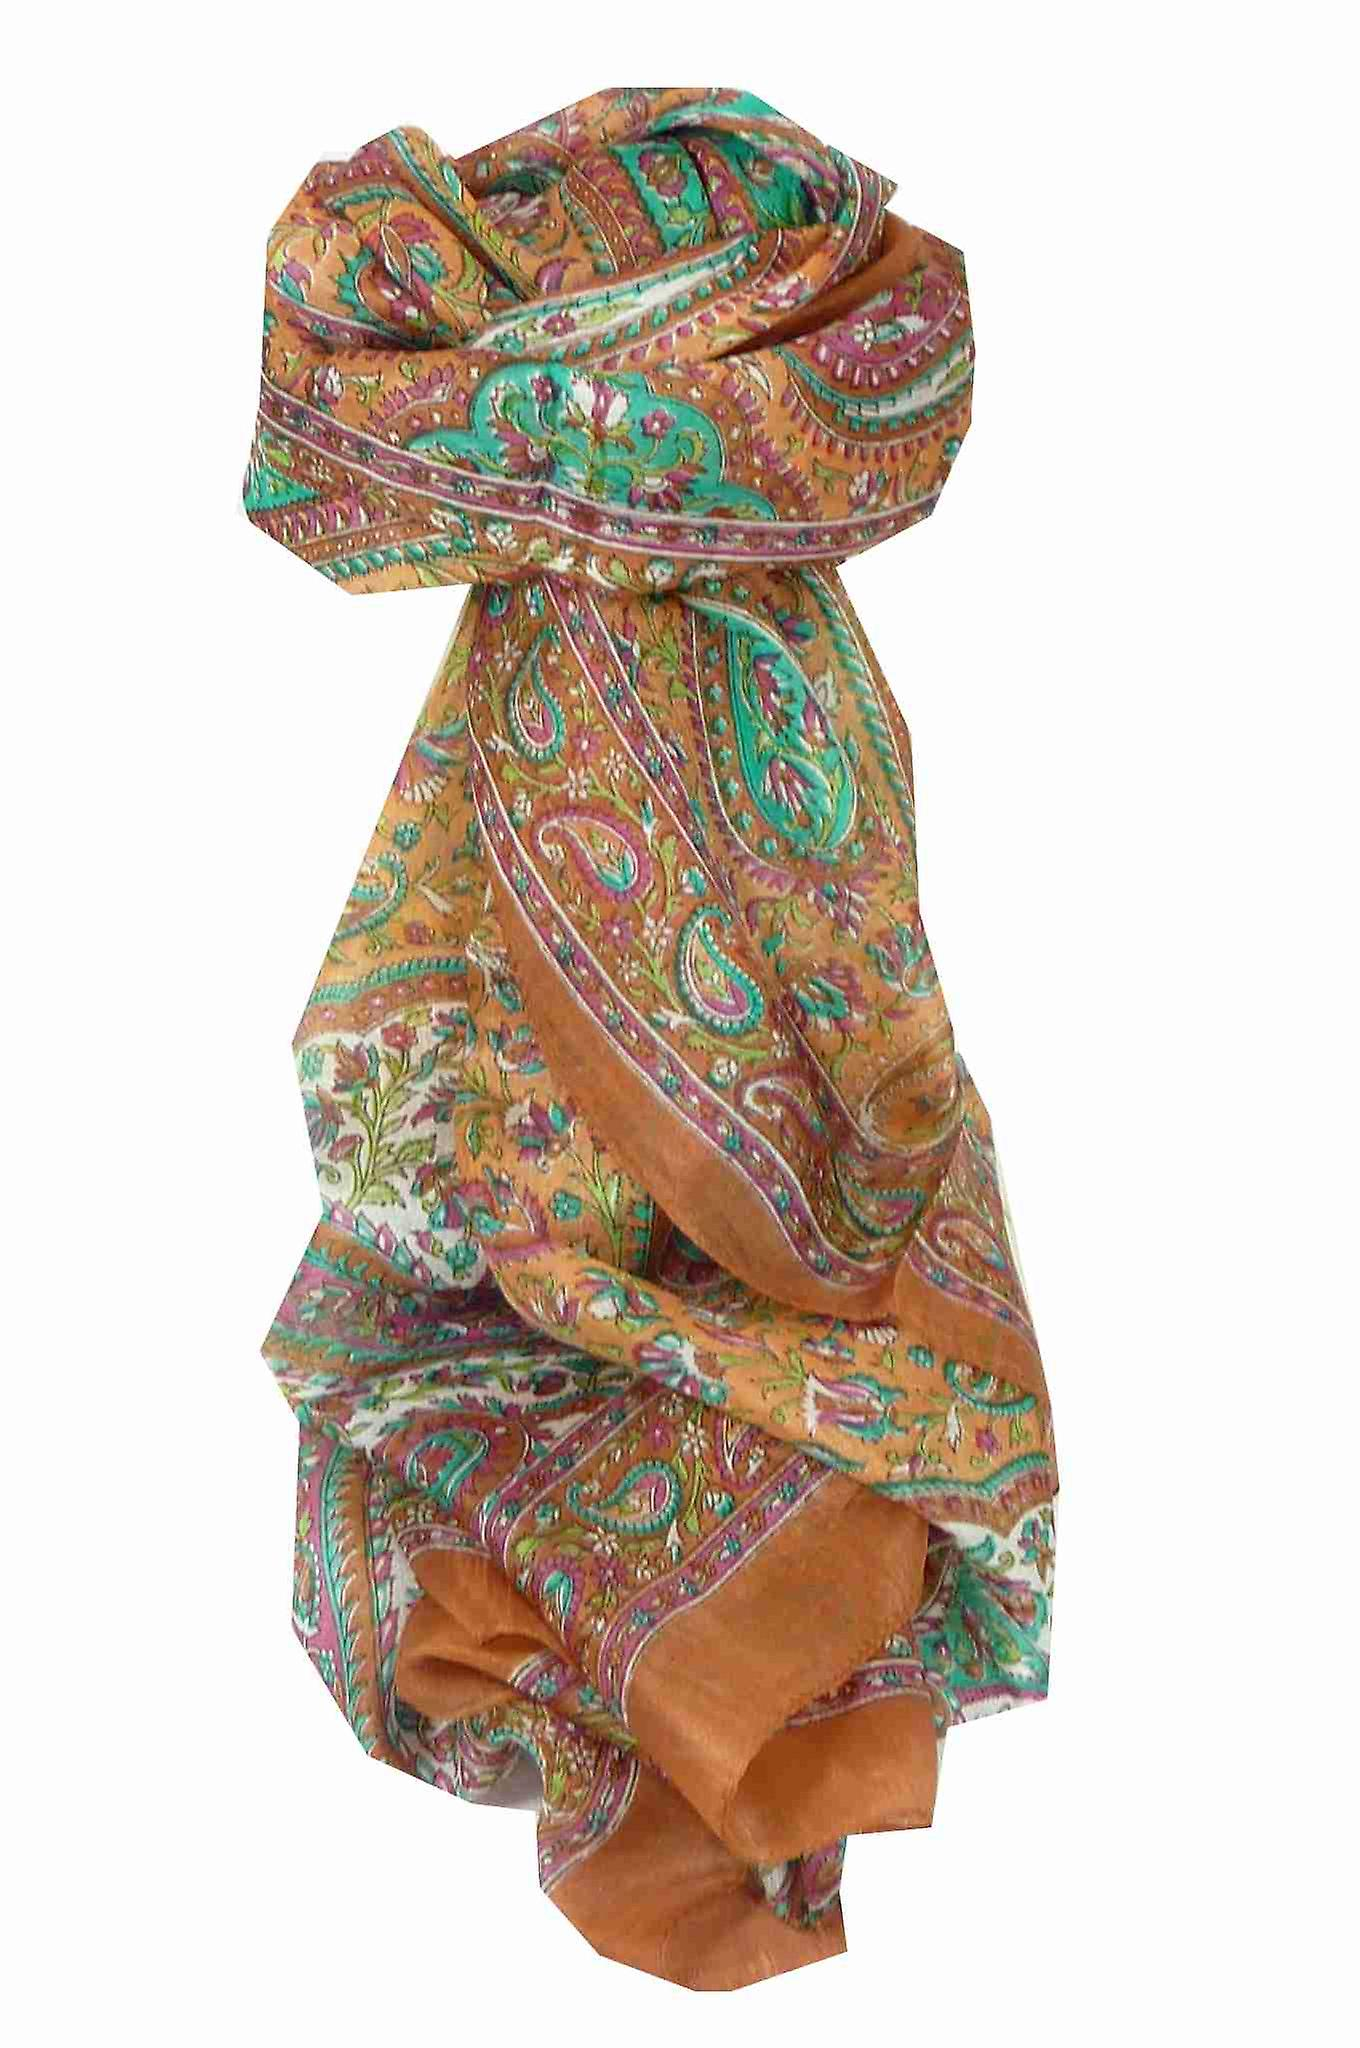 Mulberry Silk Traditional Long Scarf Tunga Copper by Pashmina & Silk